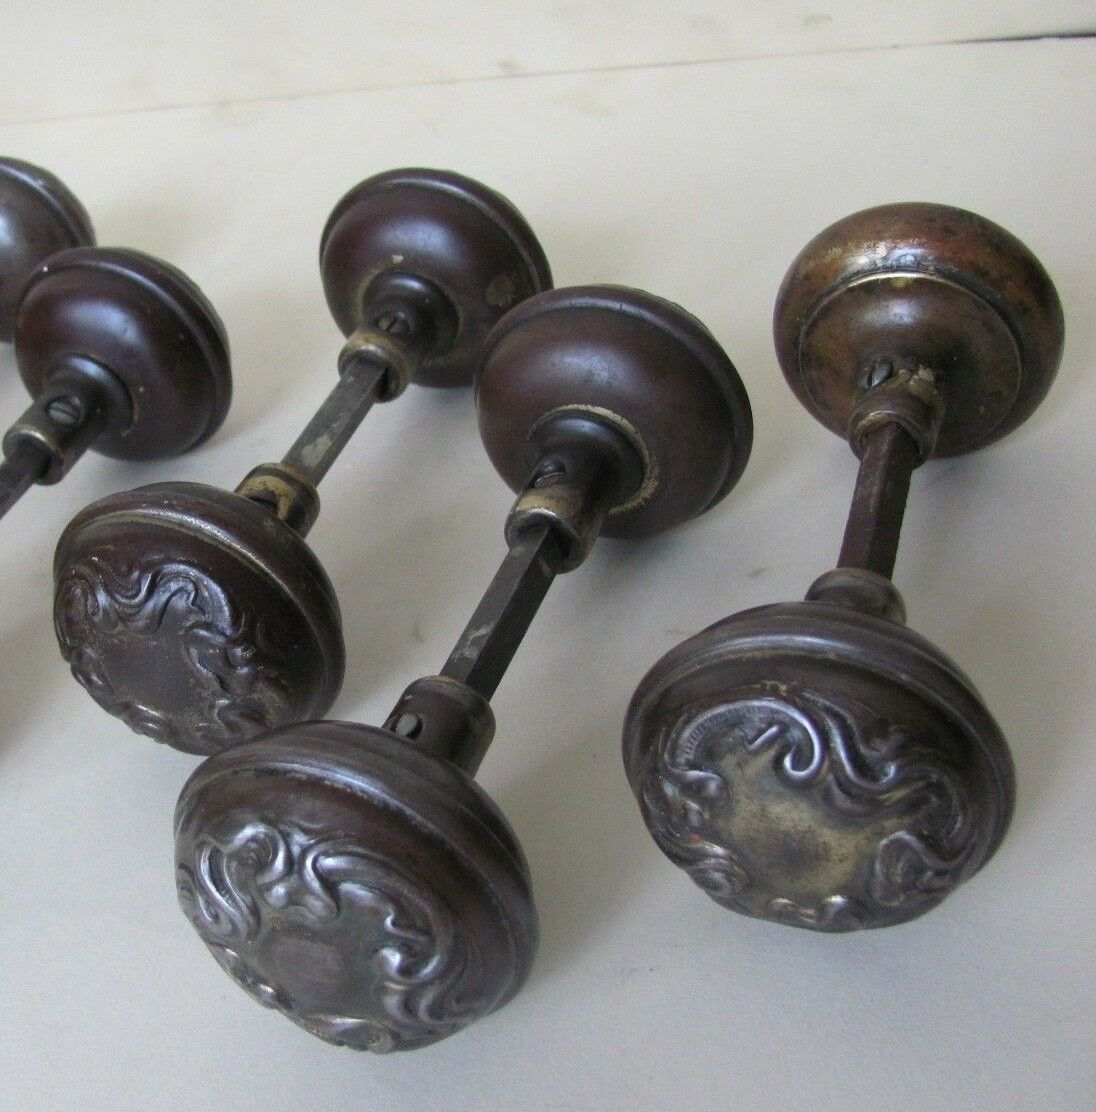 1 PAIR of Antique ART NOUVEAU Door Knobs - REFURBISHED! (9 AVAILABLE)